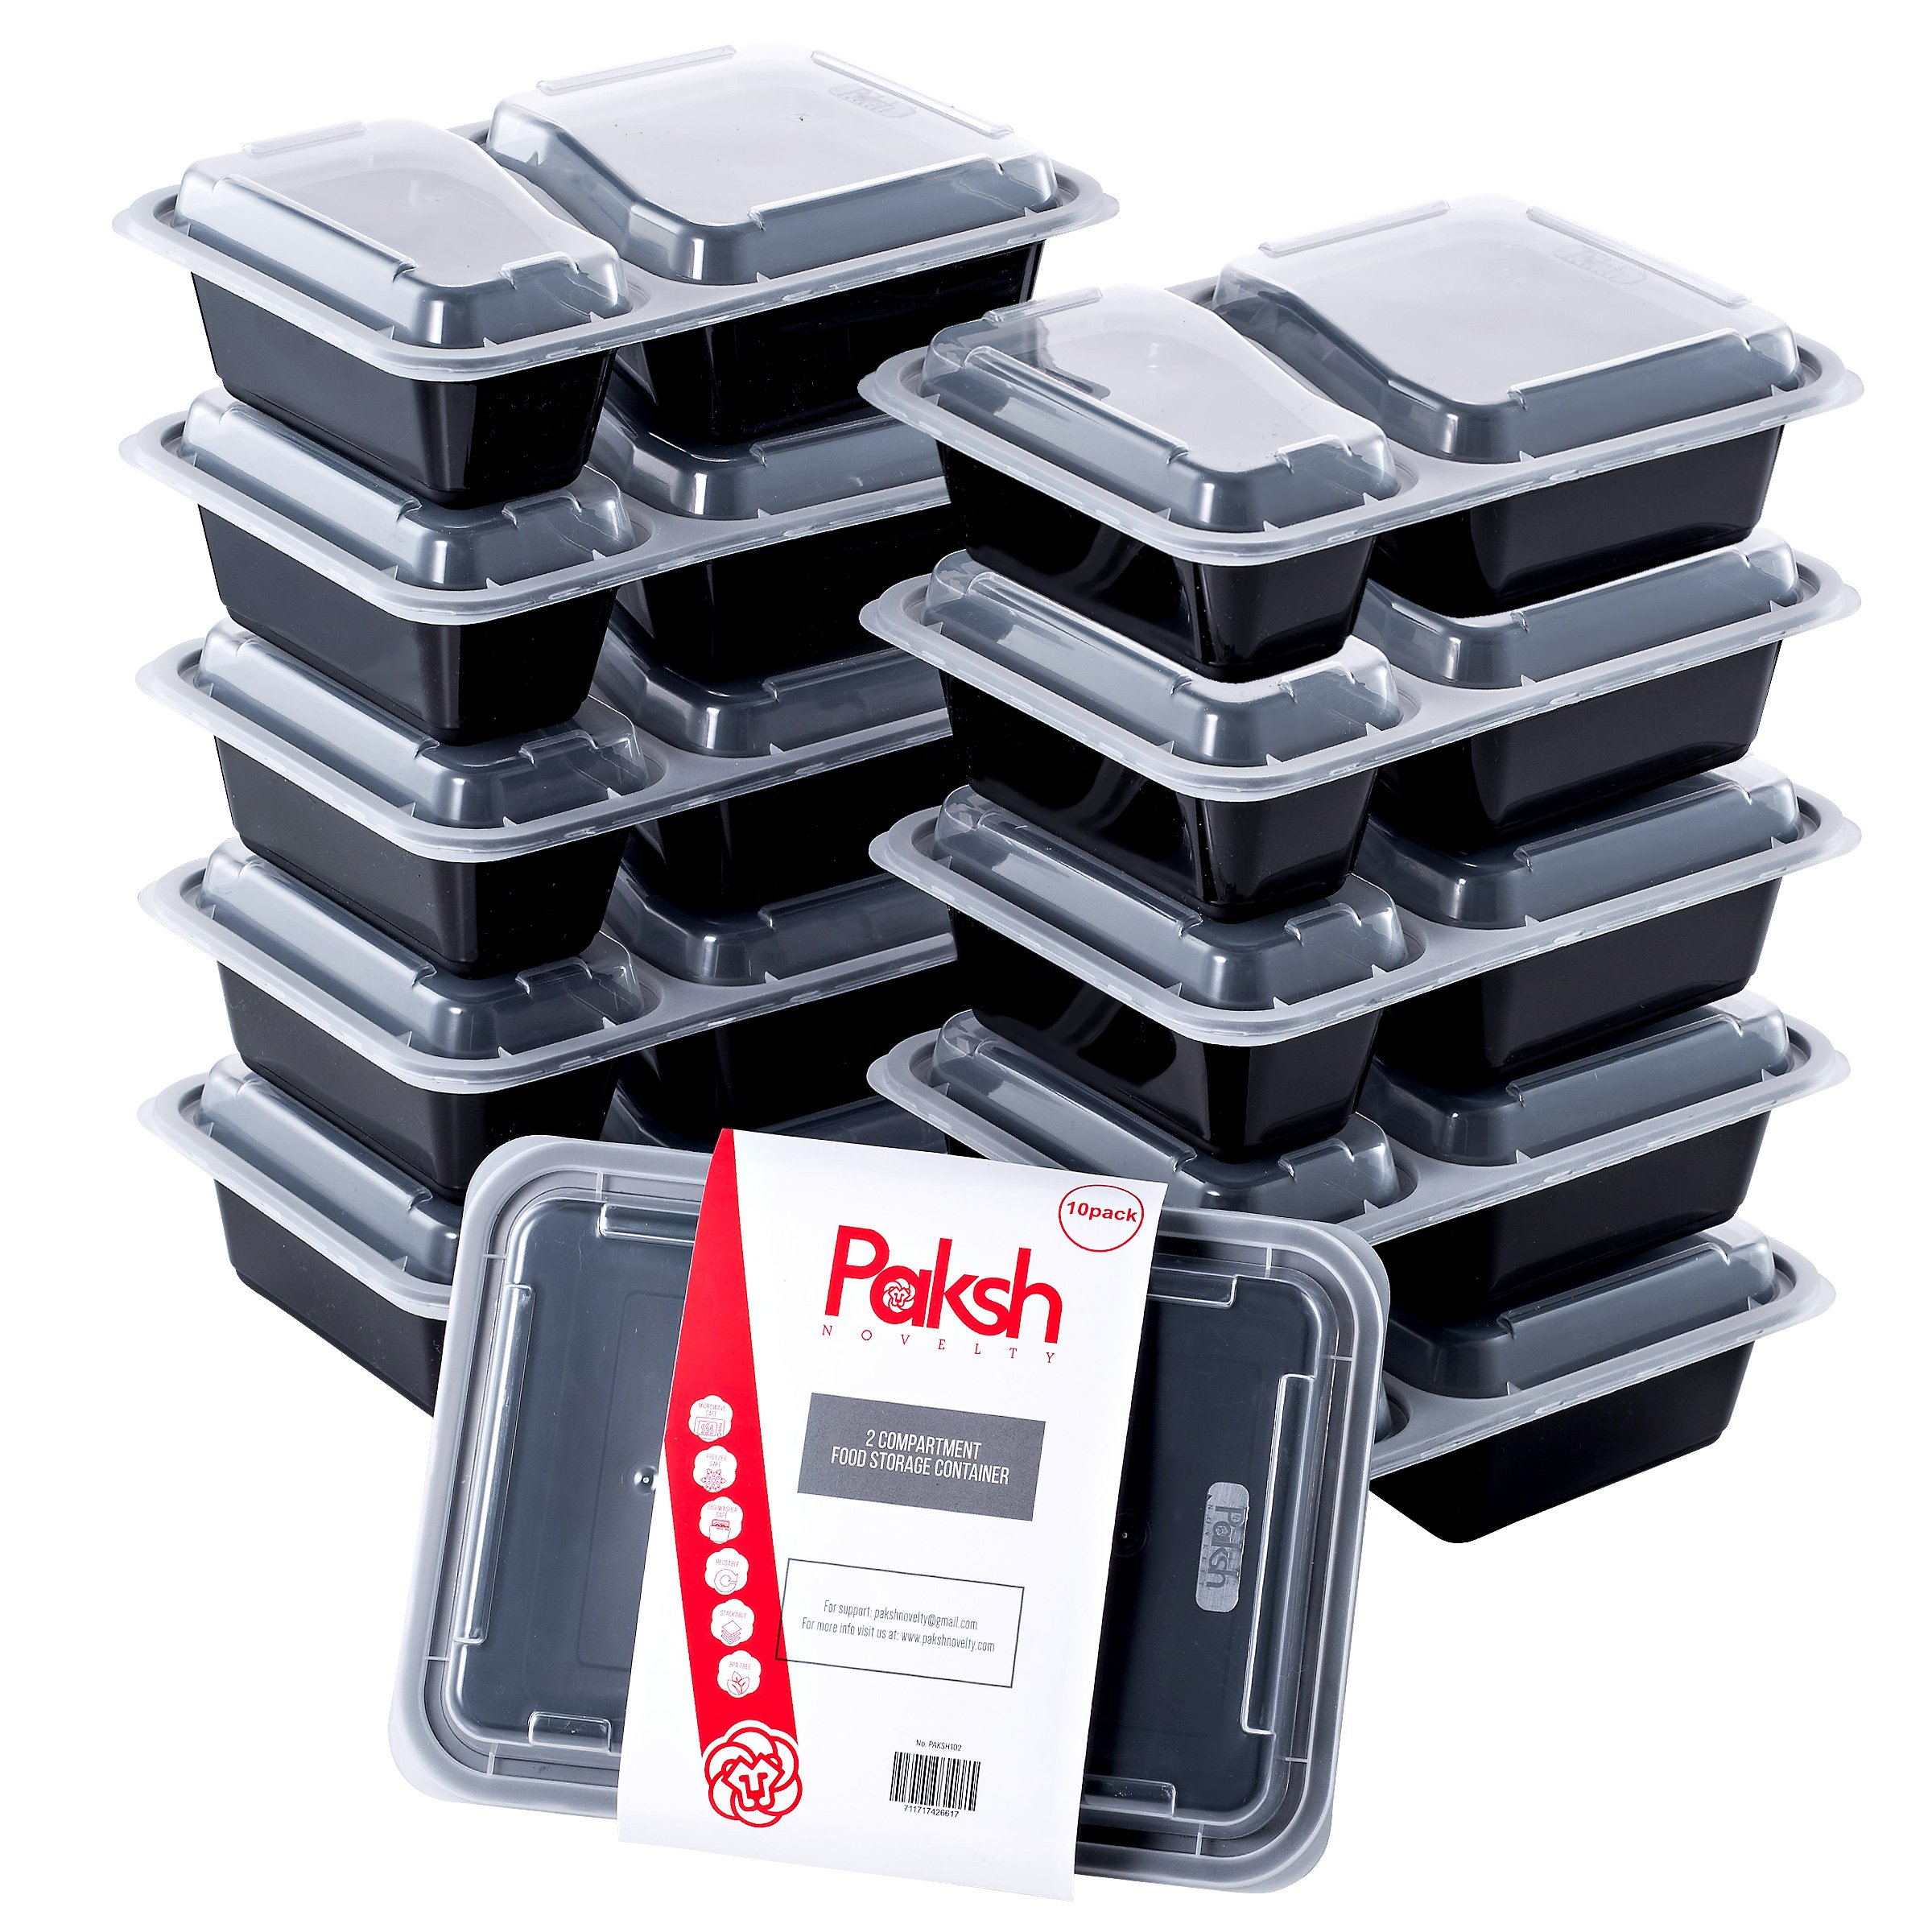 Paksh Novelty Meal Prep Lunch Containers 2-Compartment with Super Easy Open Lids - BPA-Free, Reusable, Microwavable - Bento Box Food Containers for Portion Control, and Leftovers (10 Pack), 30 ounces.